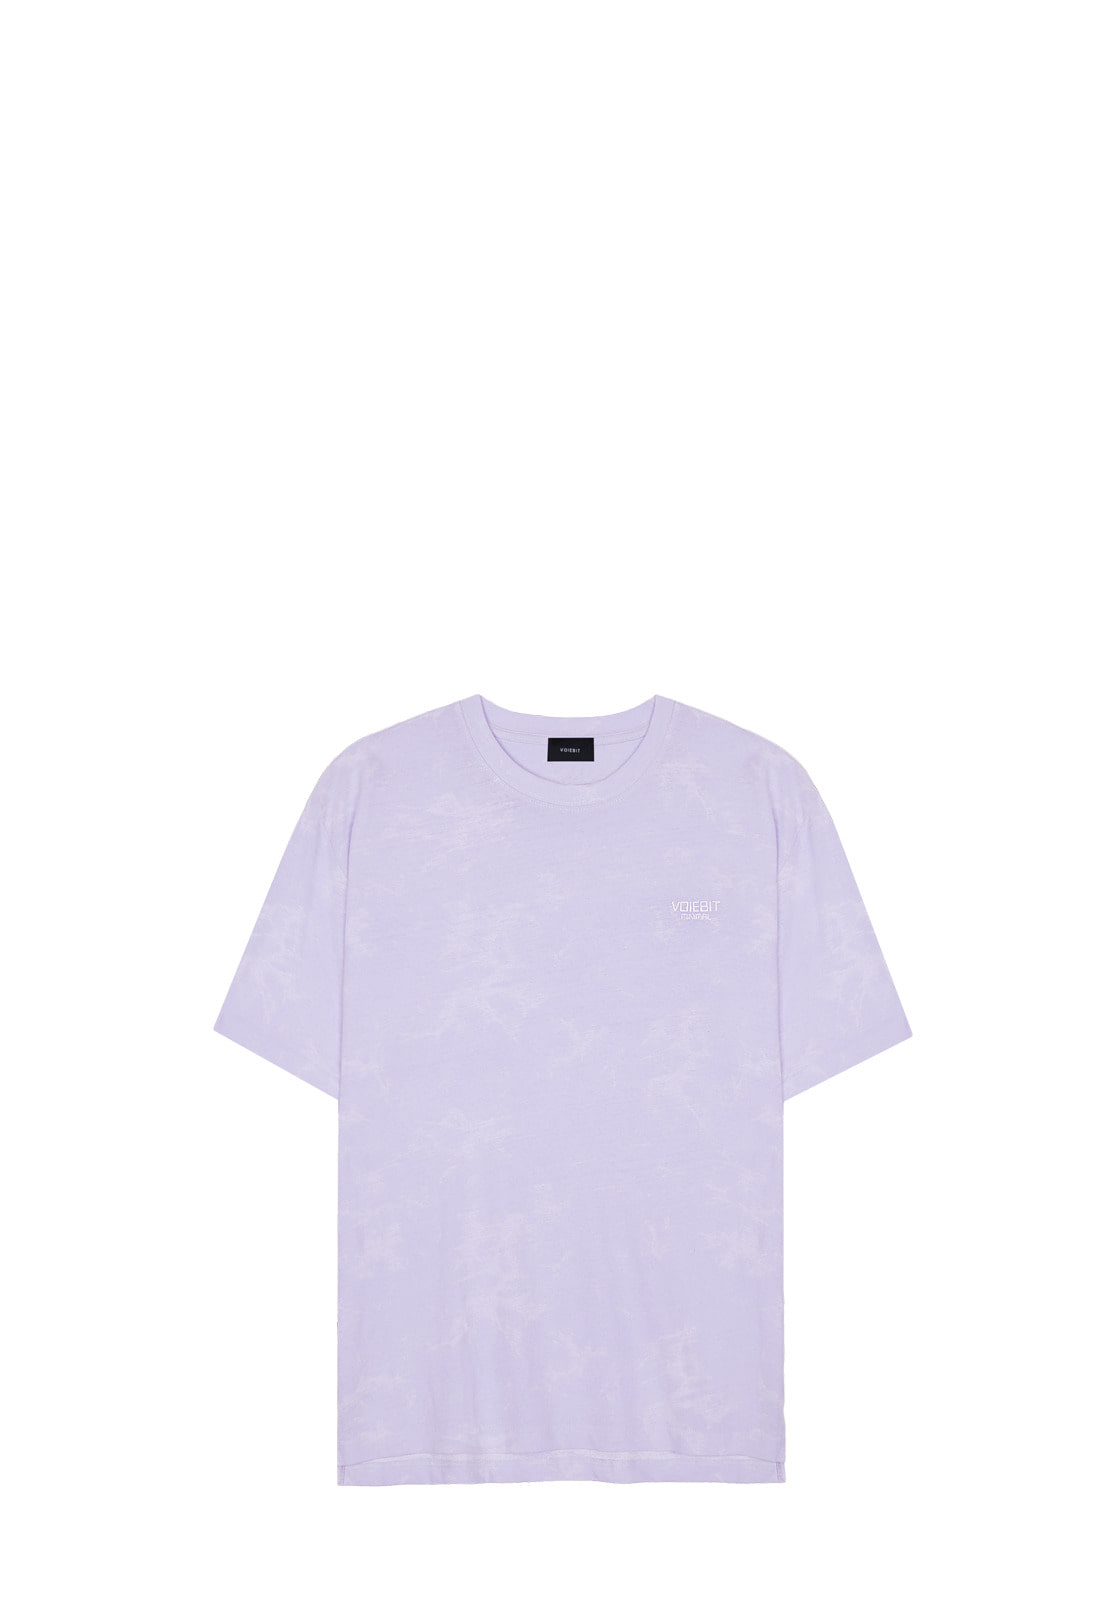 V334 WASHING LOGO HALF-TEE  PURPLE